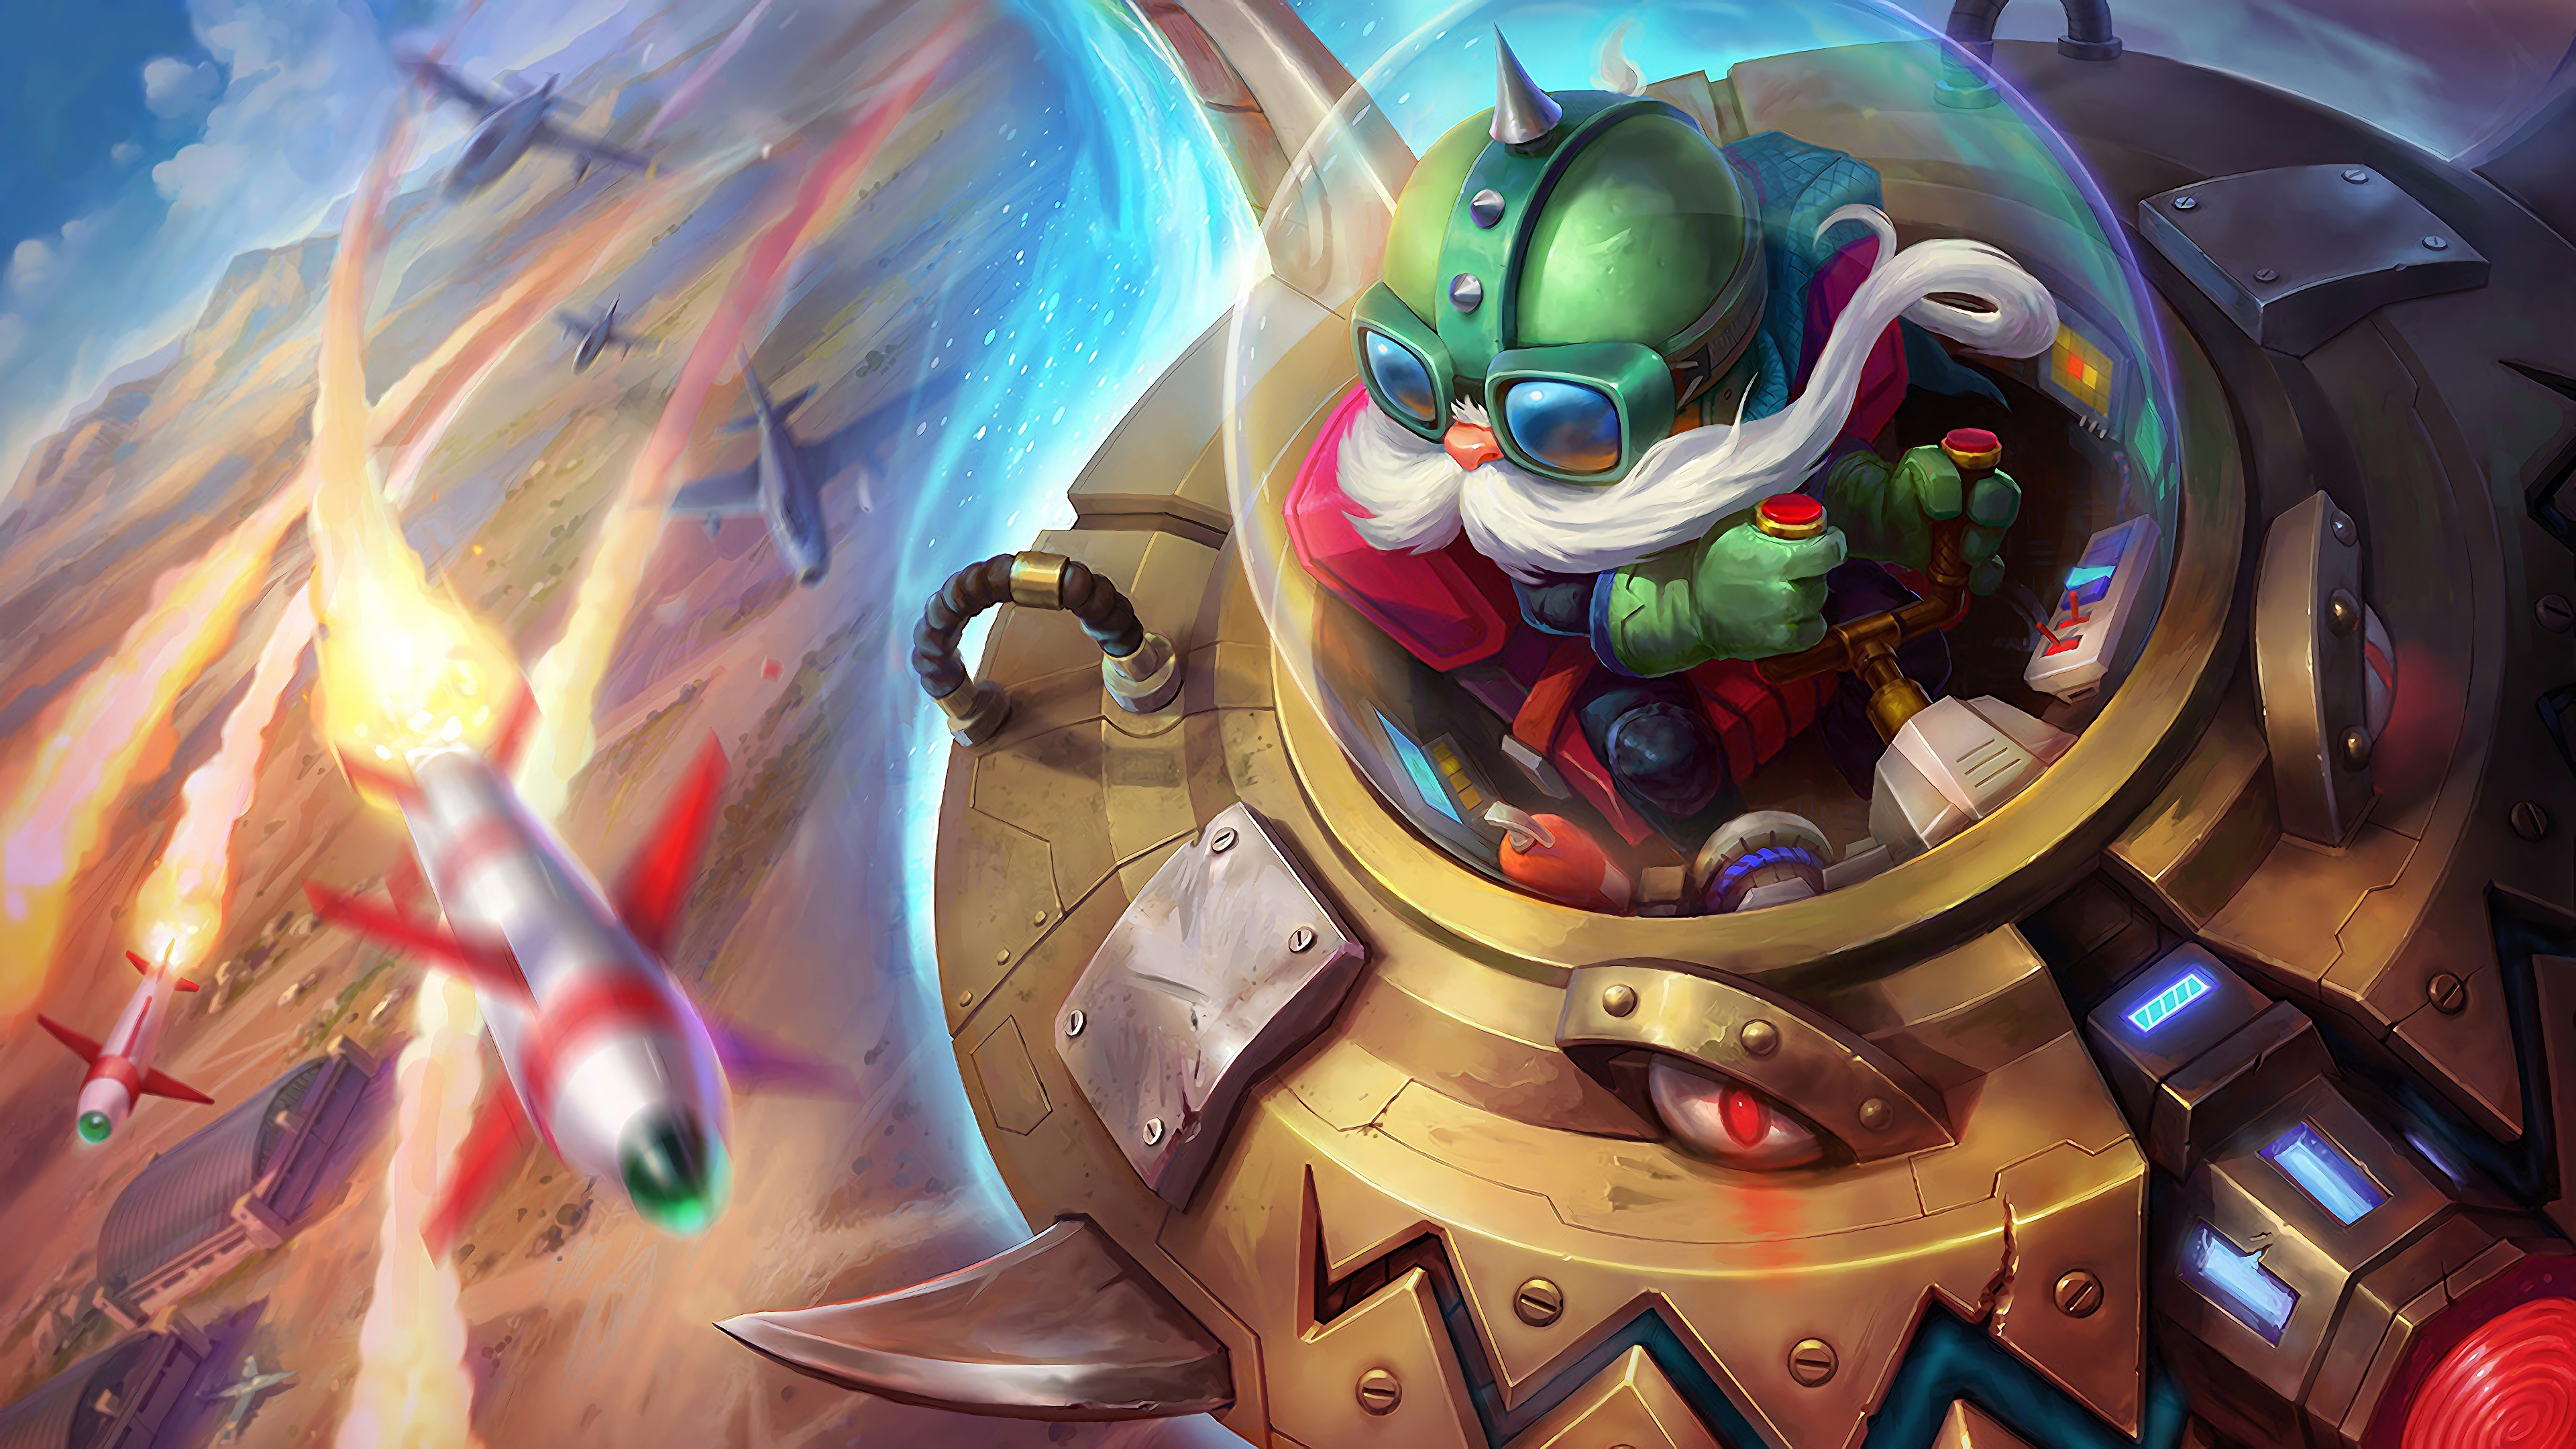 ufo corki lol splash art league of legends 1574099736 - Ufo Corki LoL Splash Art League of Legends - league of legends, Corki